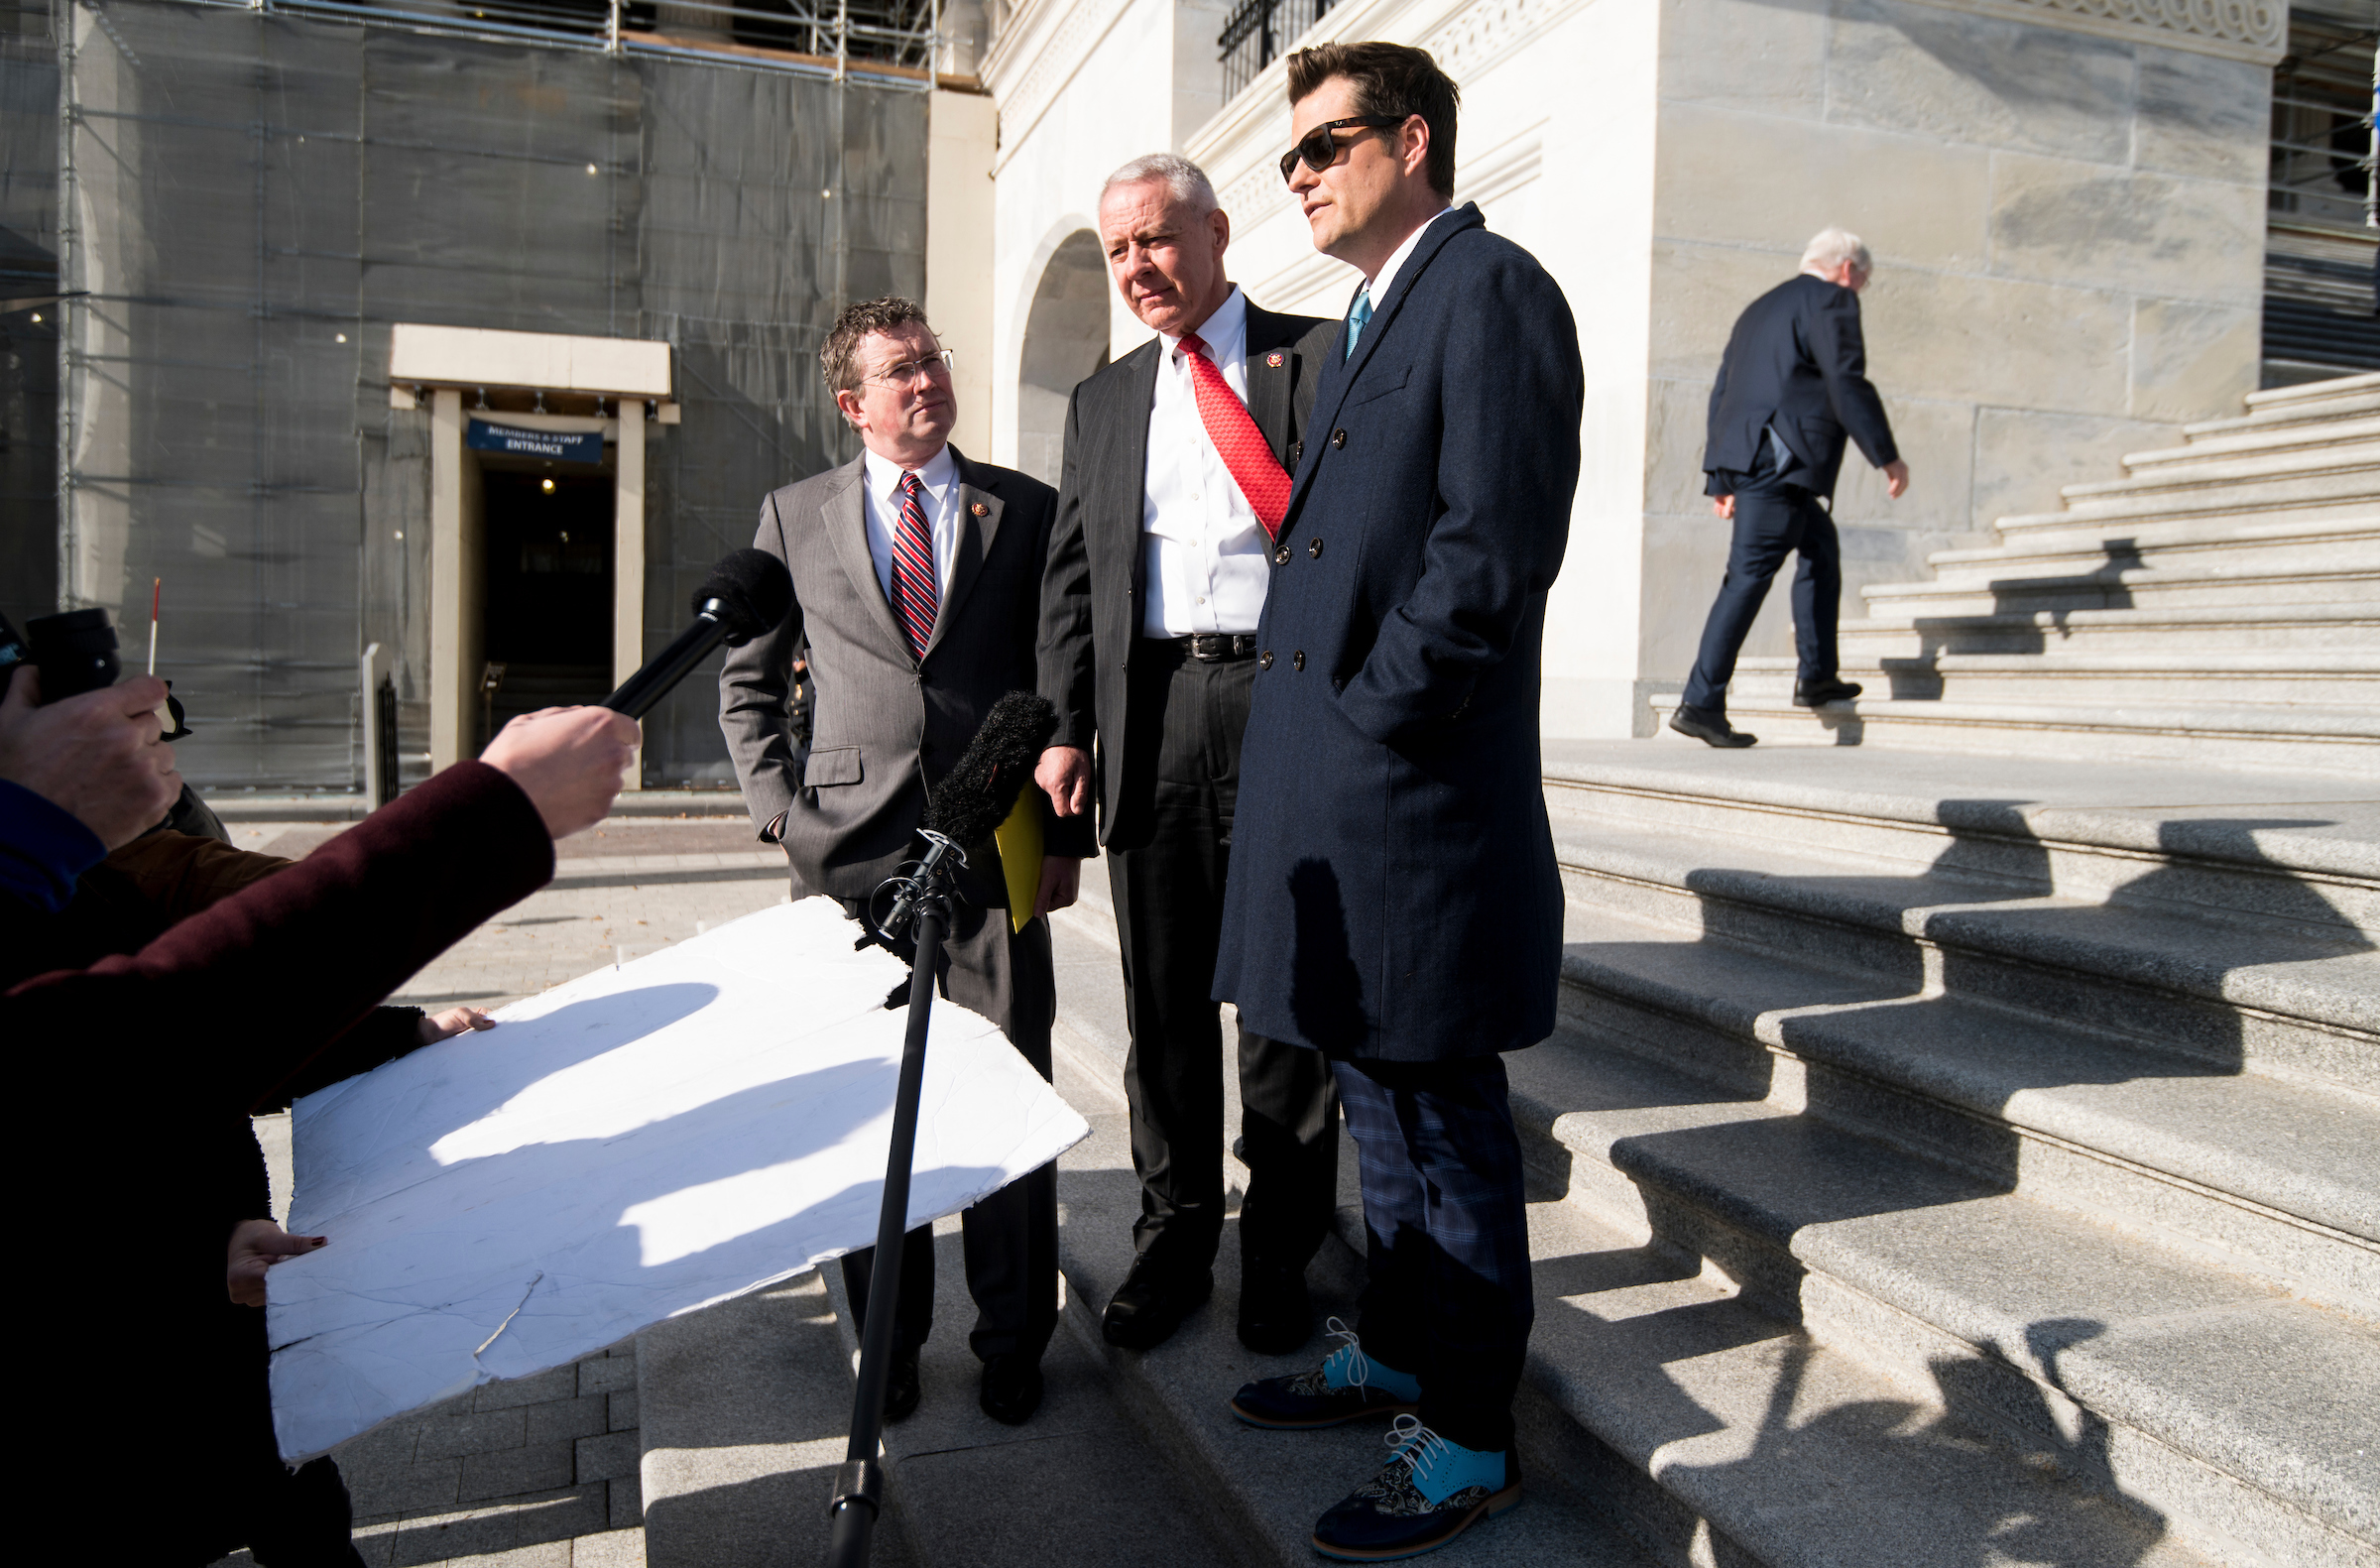 From left, Reps. Thomas Massie, R-Ky., Ken Buck, R-Colo., and Matt Gaetz, R-Fla., stop on the House steps to speak to a film crew as they arrive to vote on the impeachment rules package. (Bill Clark/CQ Roll Call)